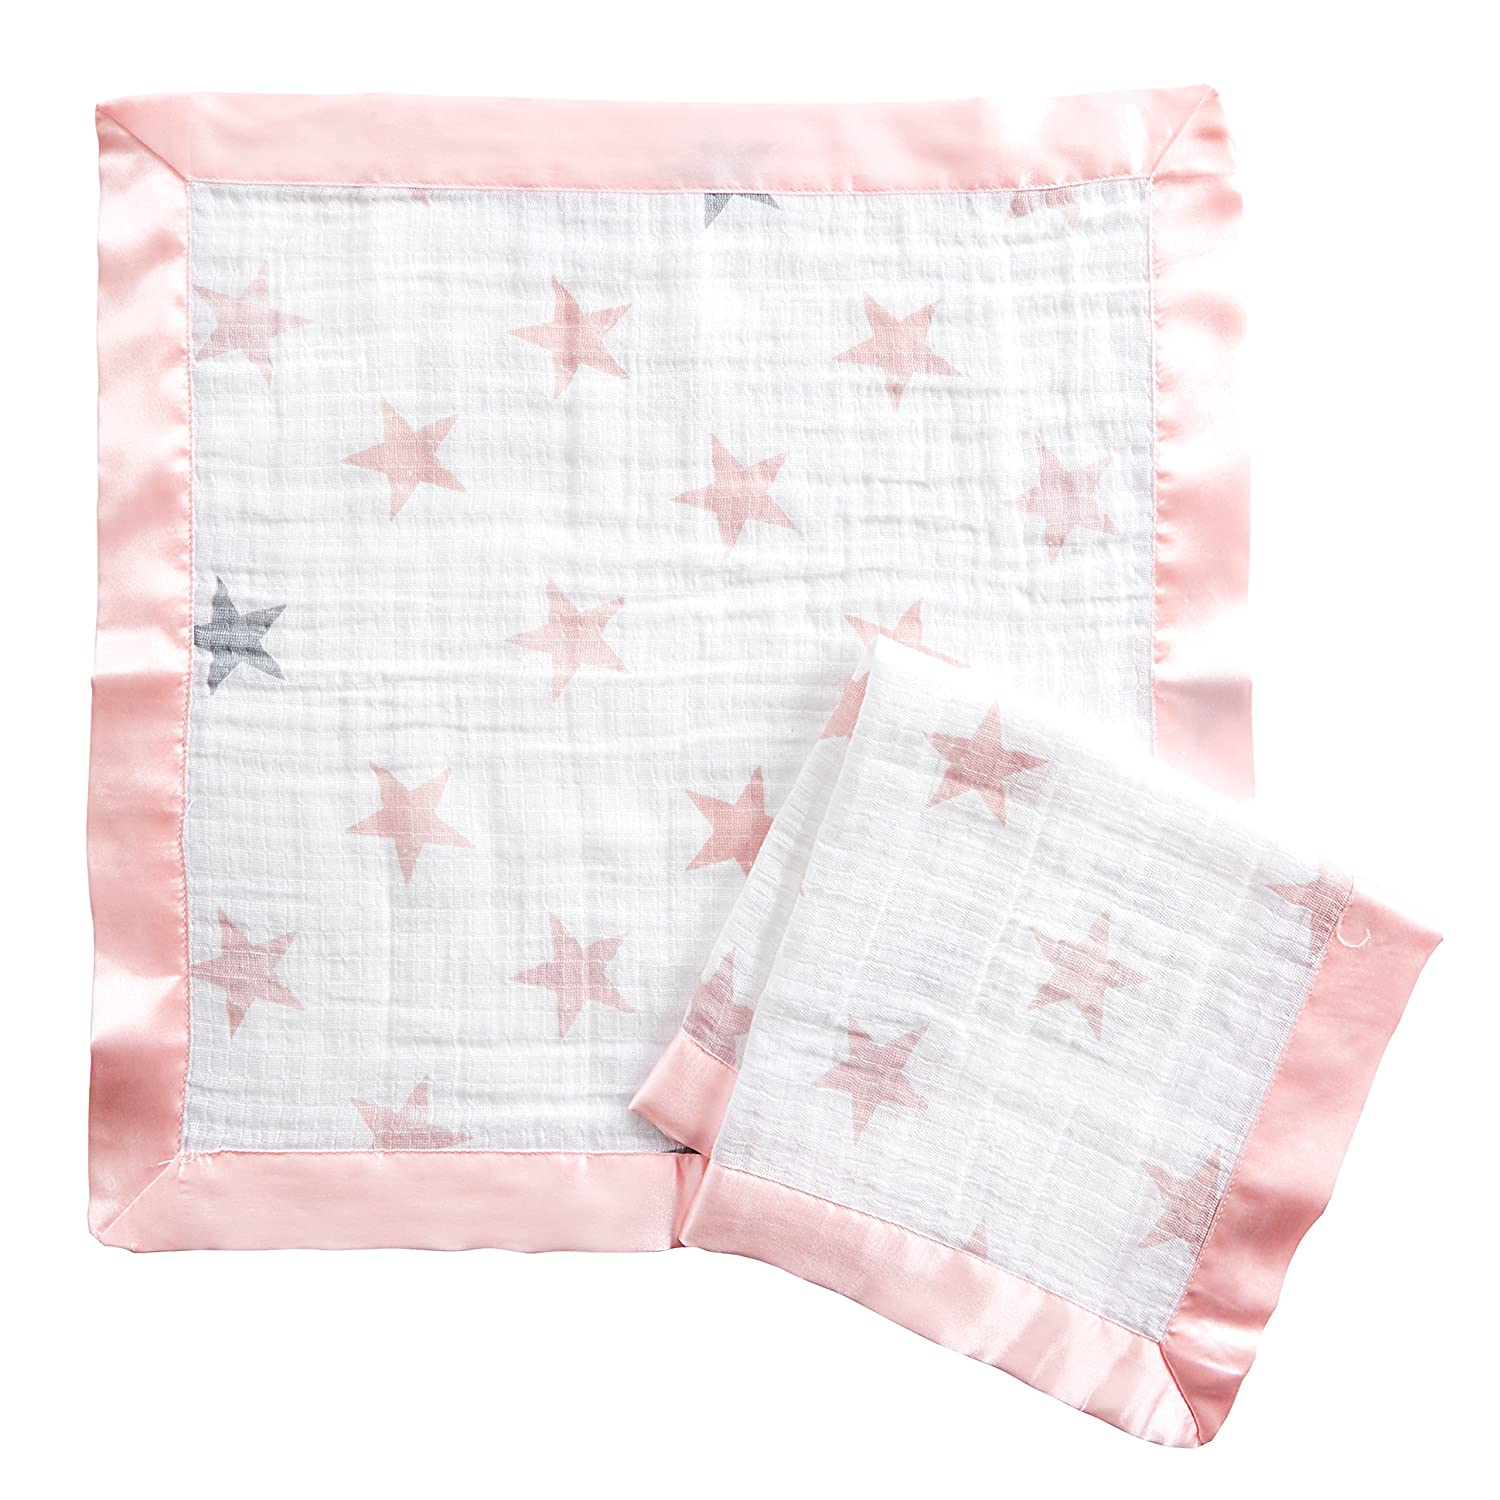 aden + anais Security Blanket, Full Bloom, Pack of 2 Aden and Anais G3511B